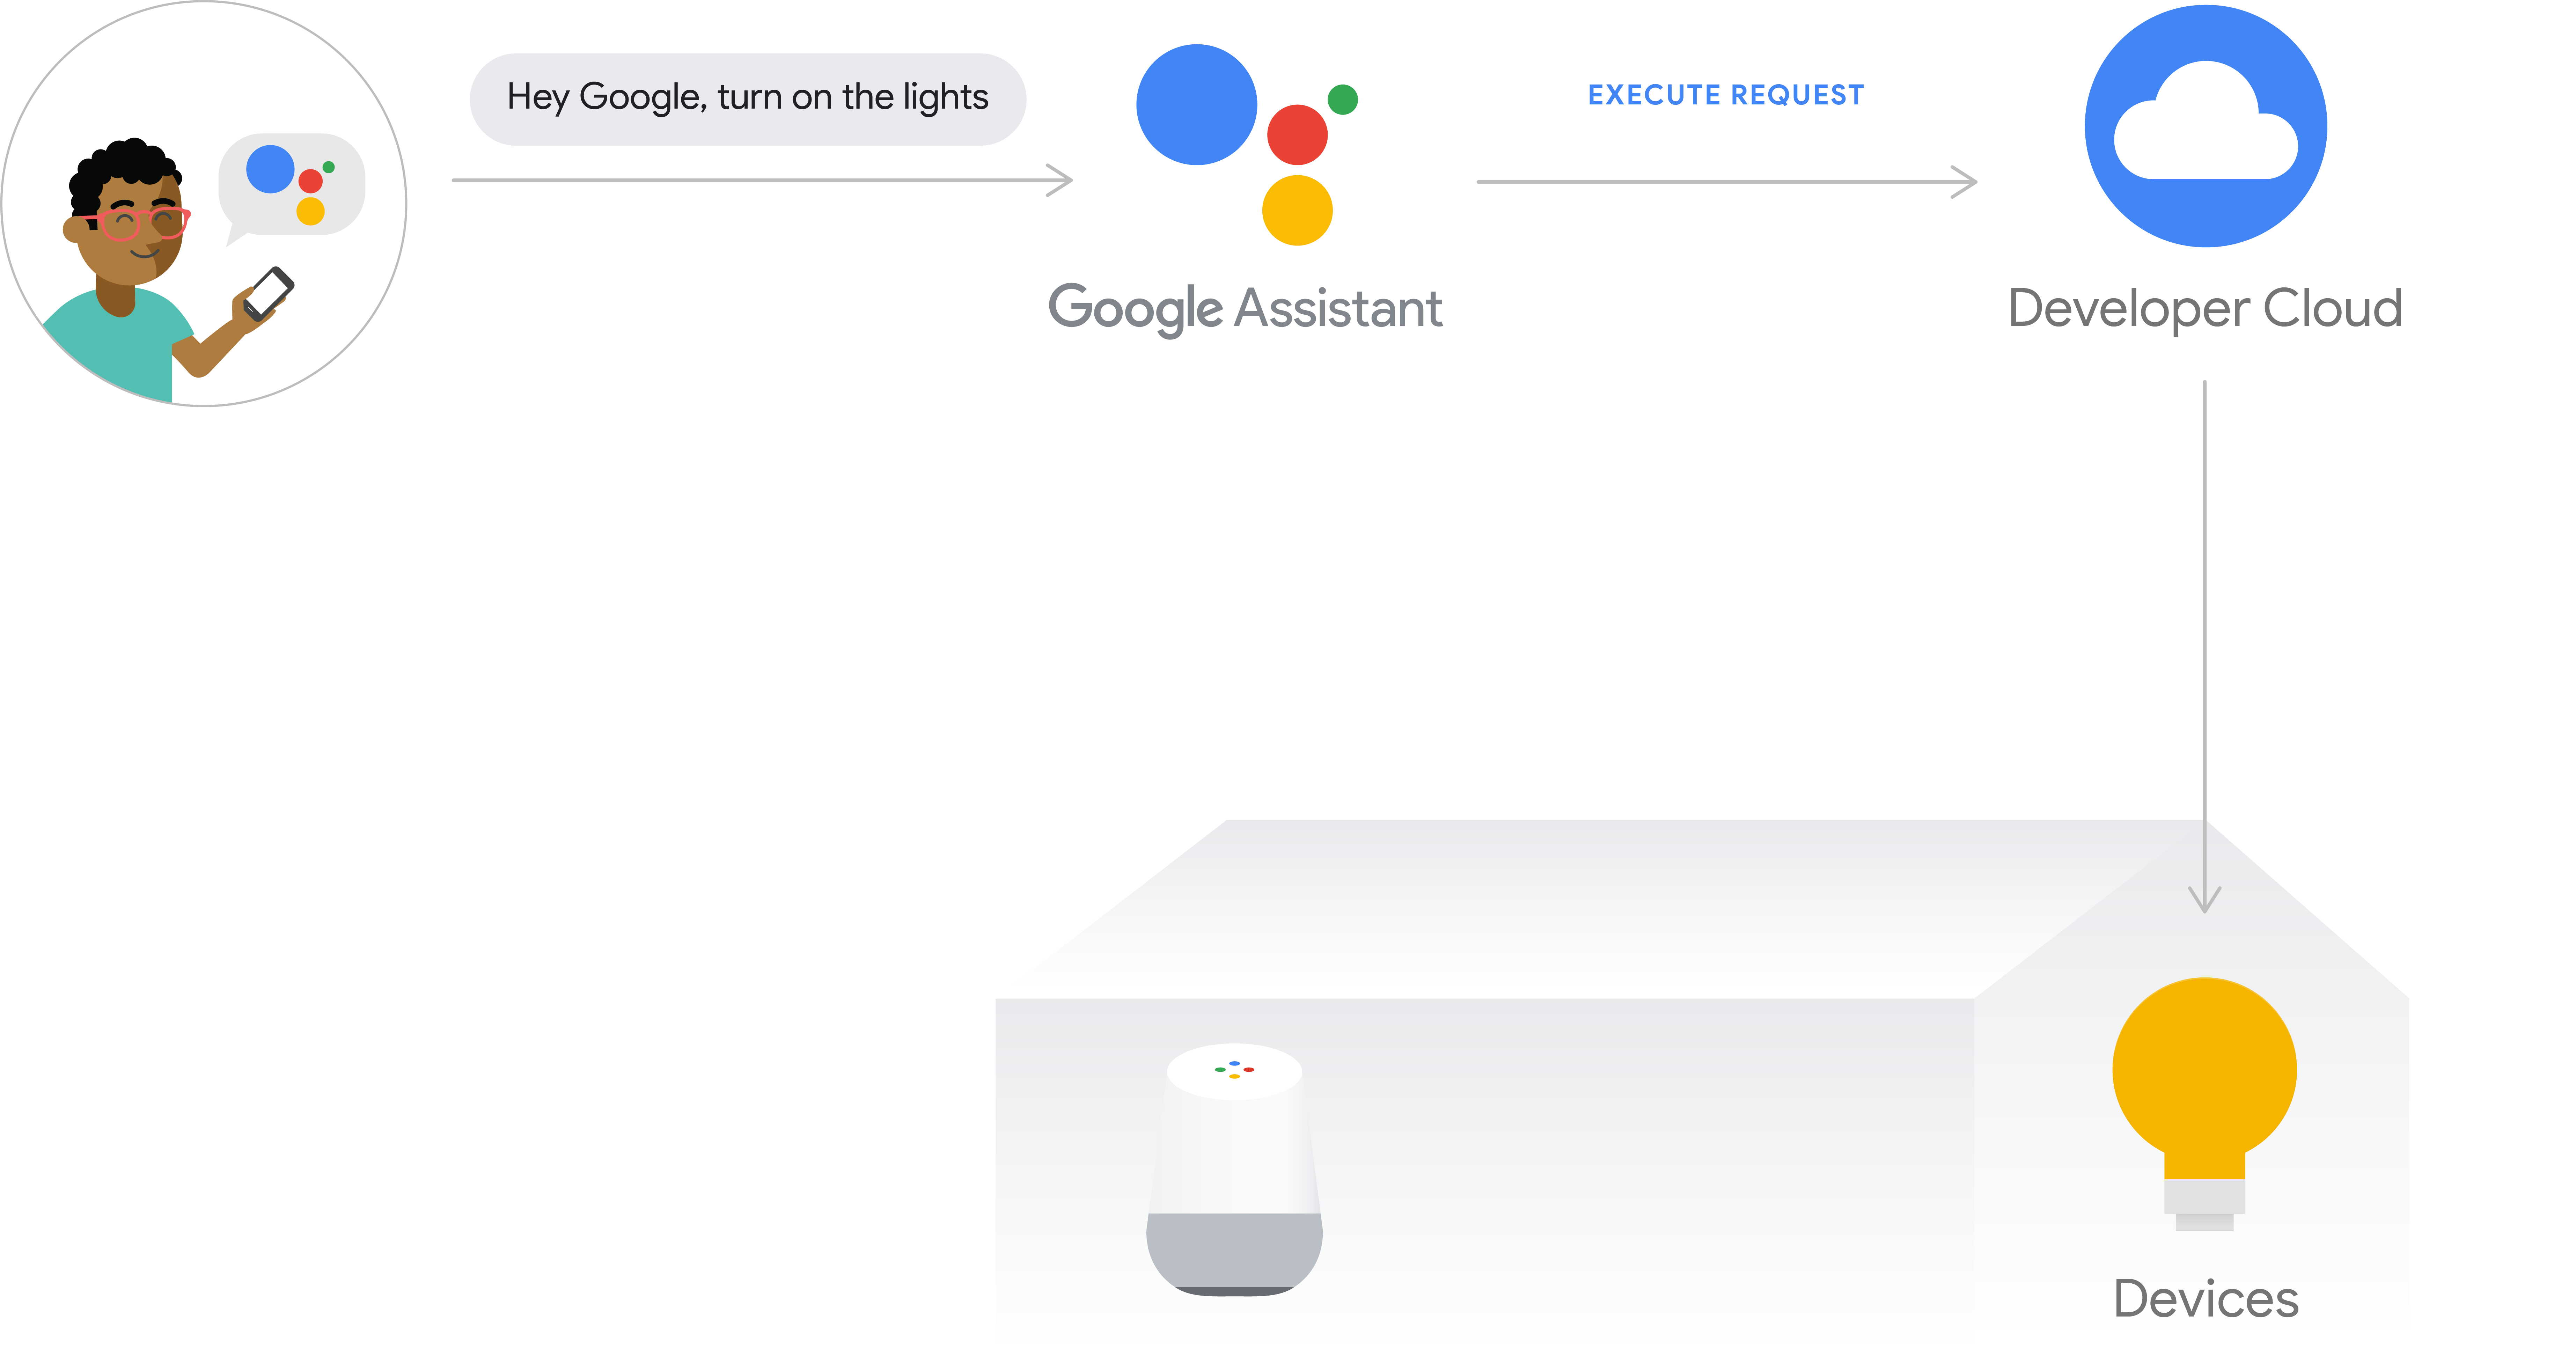 This figure shows the execution flow for cloud execution. The             execution path captures a user's intent from a phone with the             Google Assistant, then the user intent is processed by             the Google Cloud, then the request is sent to the developer cloud,             and then the command is issued to the device hub or             directly to the device.